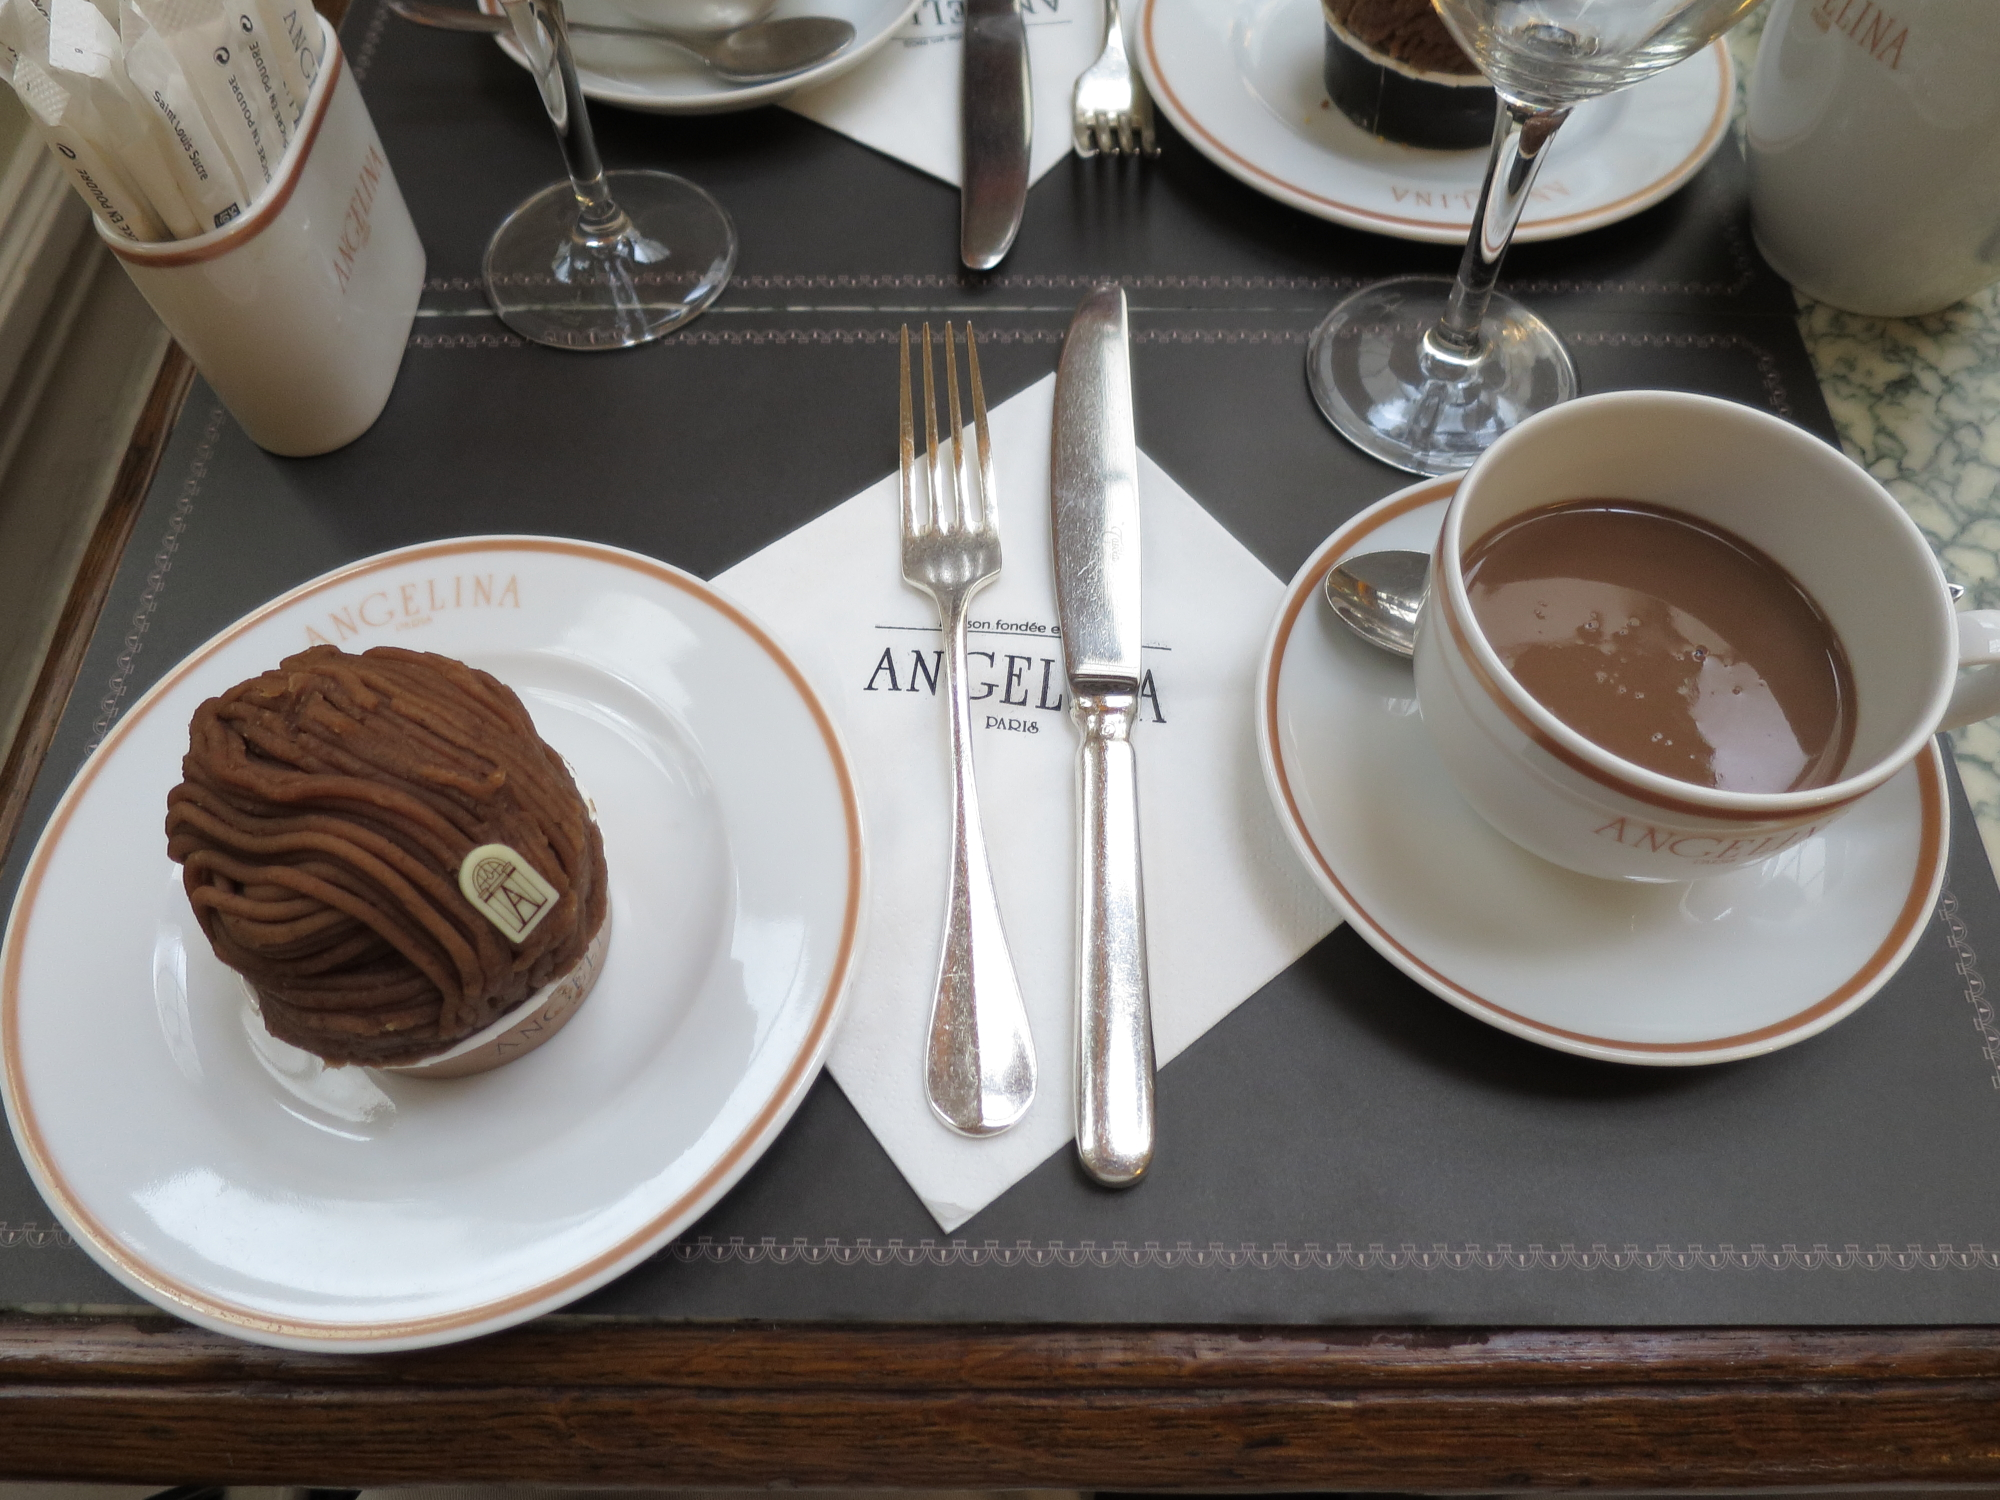 Delicious hot chocolate and rather rich chocolate truffle at Angelina's